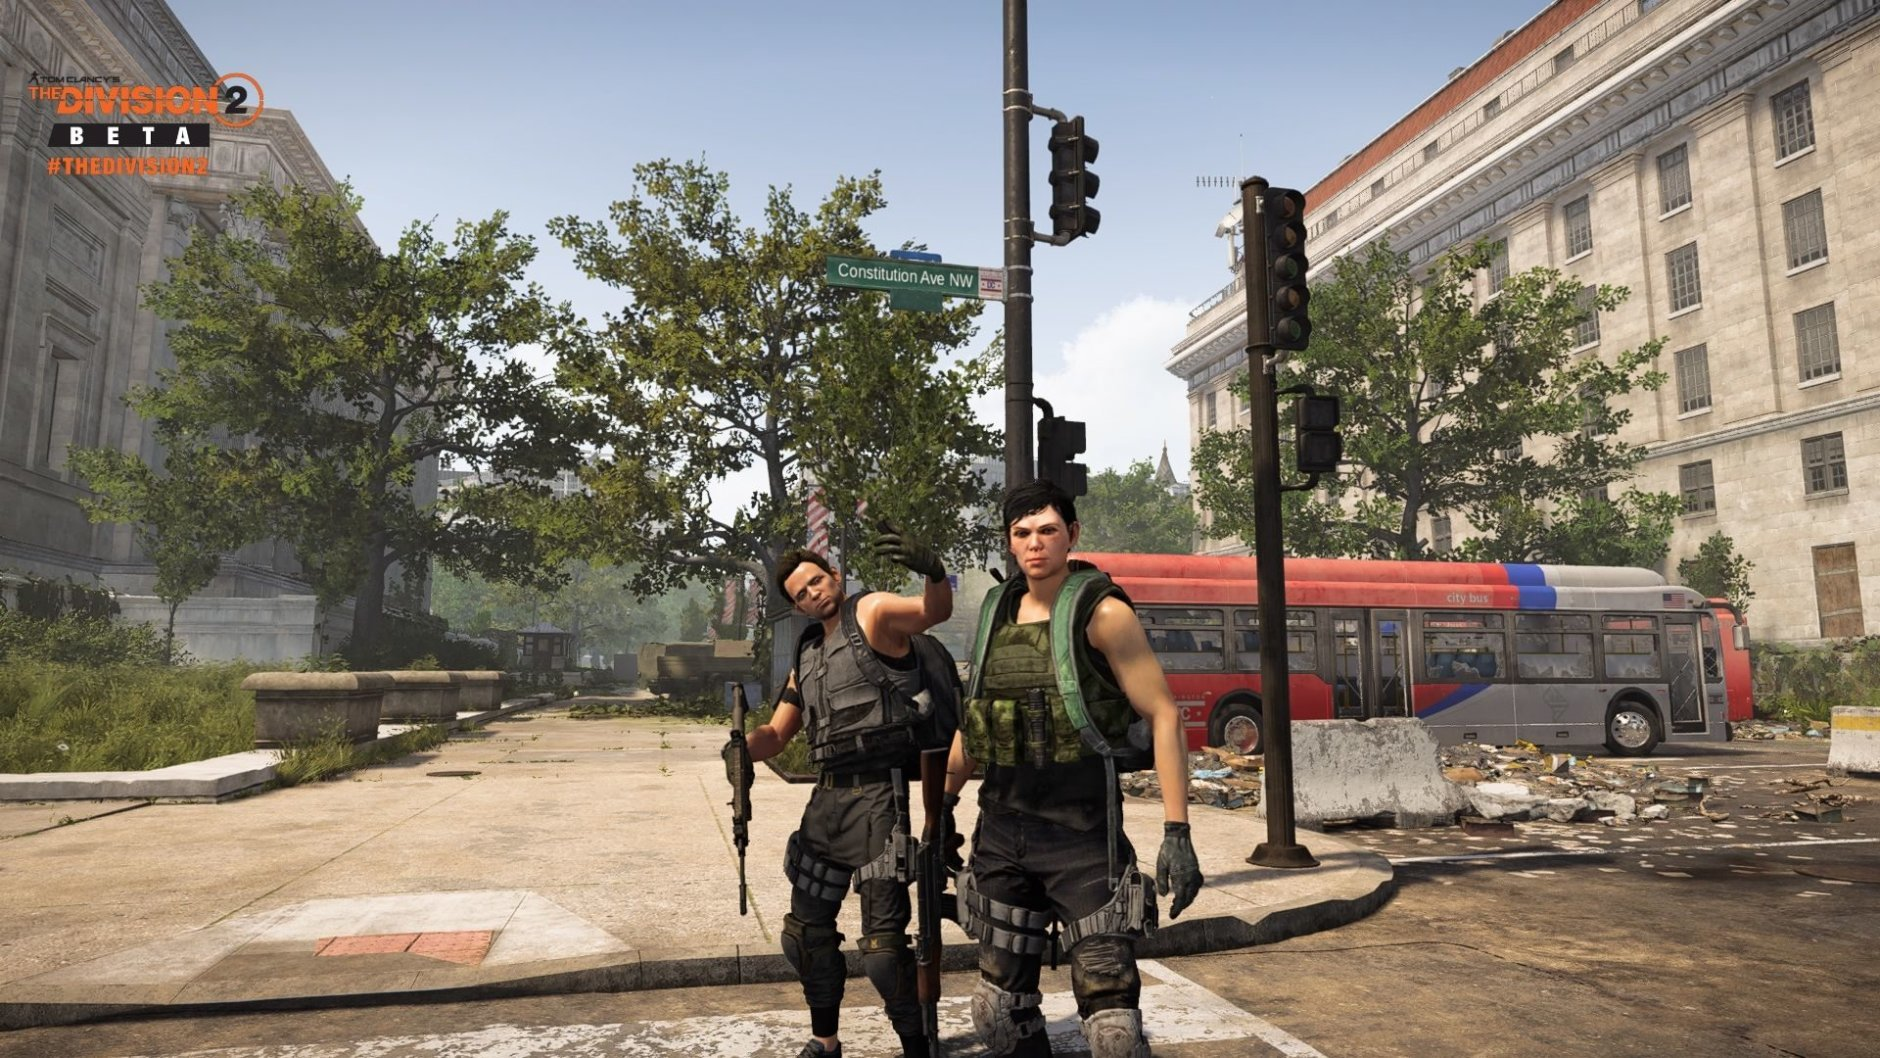 WTOP's Ginger Whitaker and her husband as their in-game counterparts in The Division 2. (WTOP/Ubisoft/Massive)